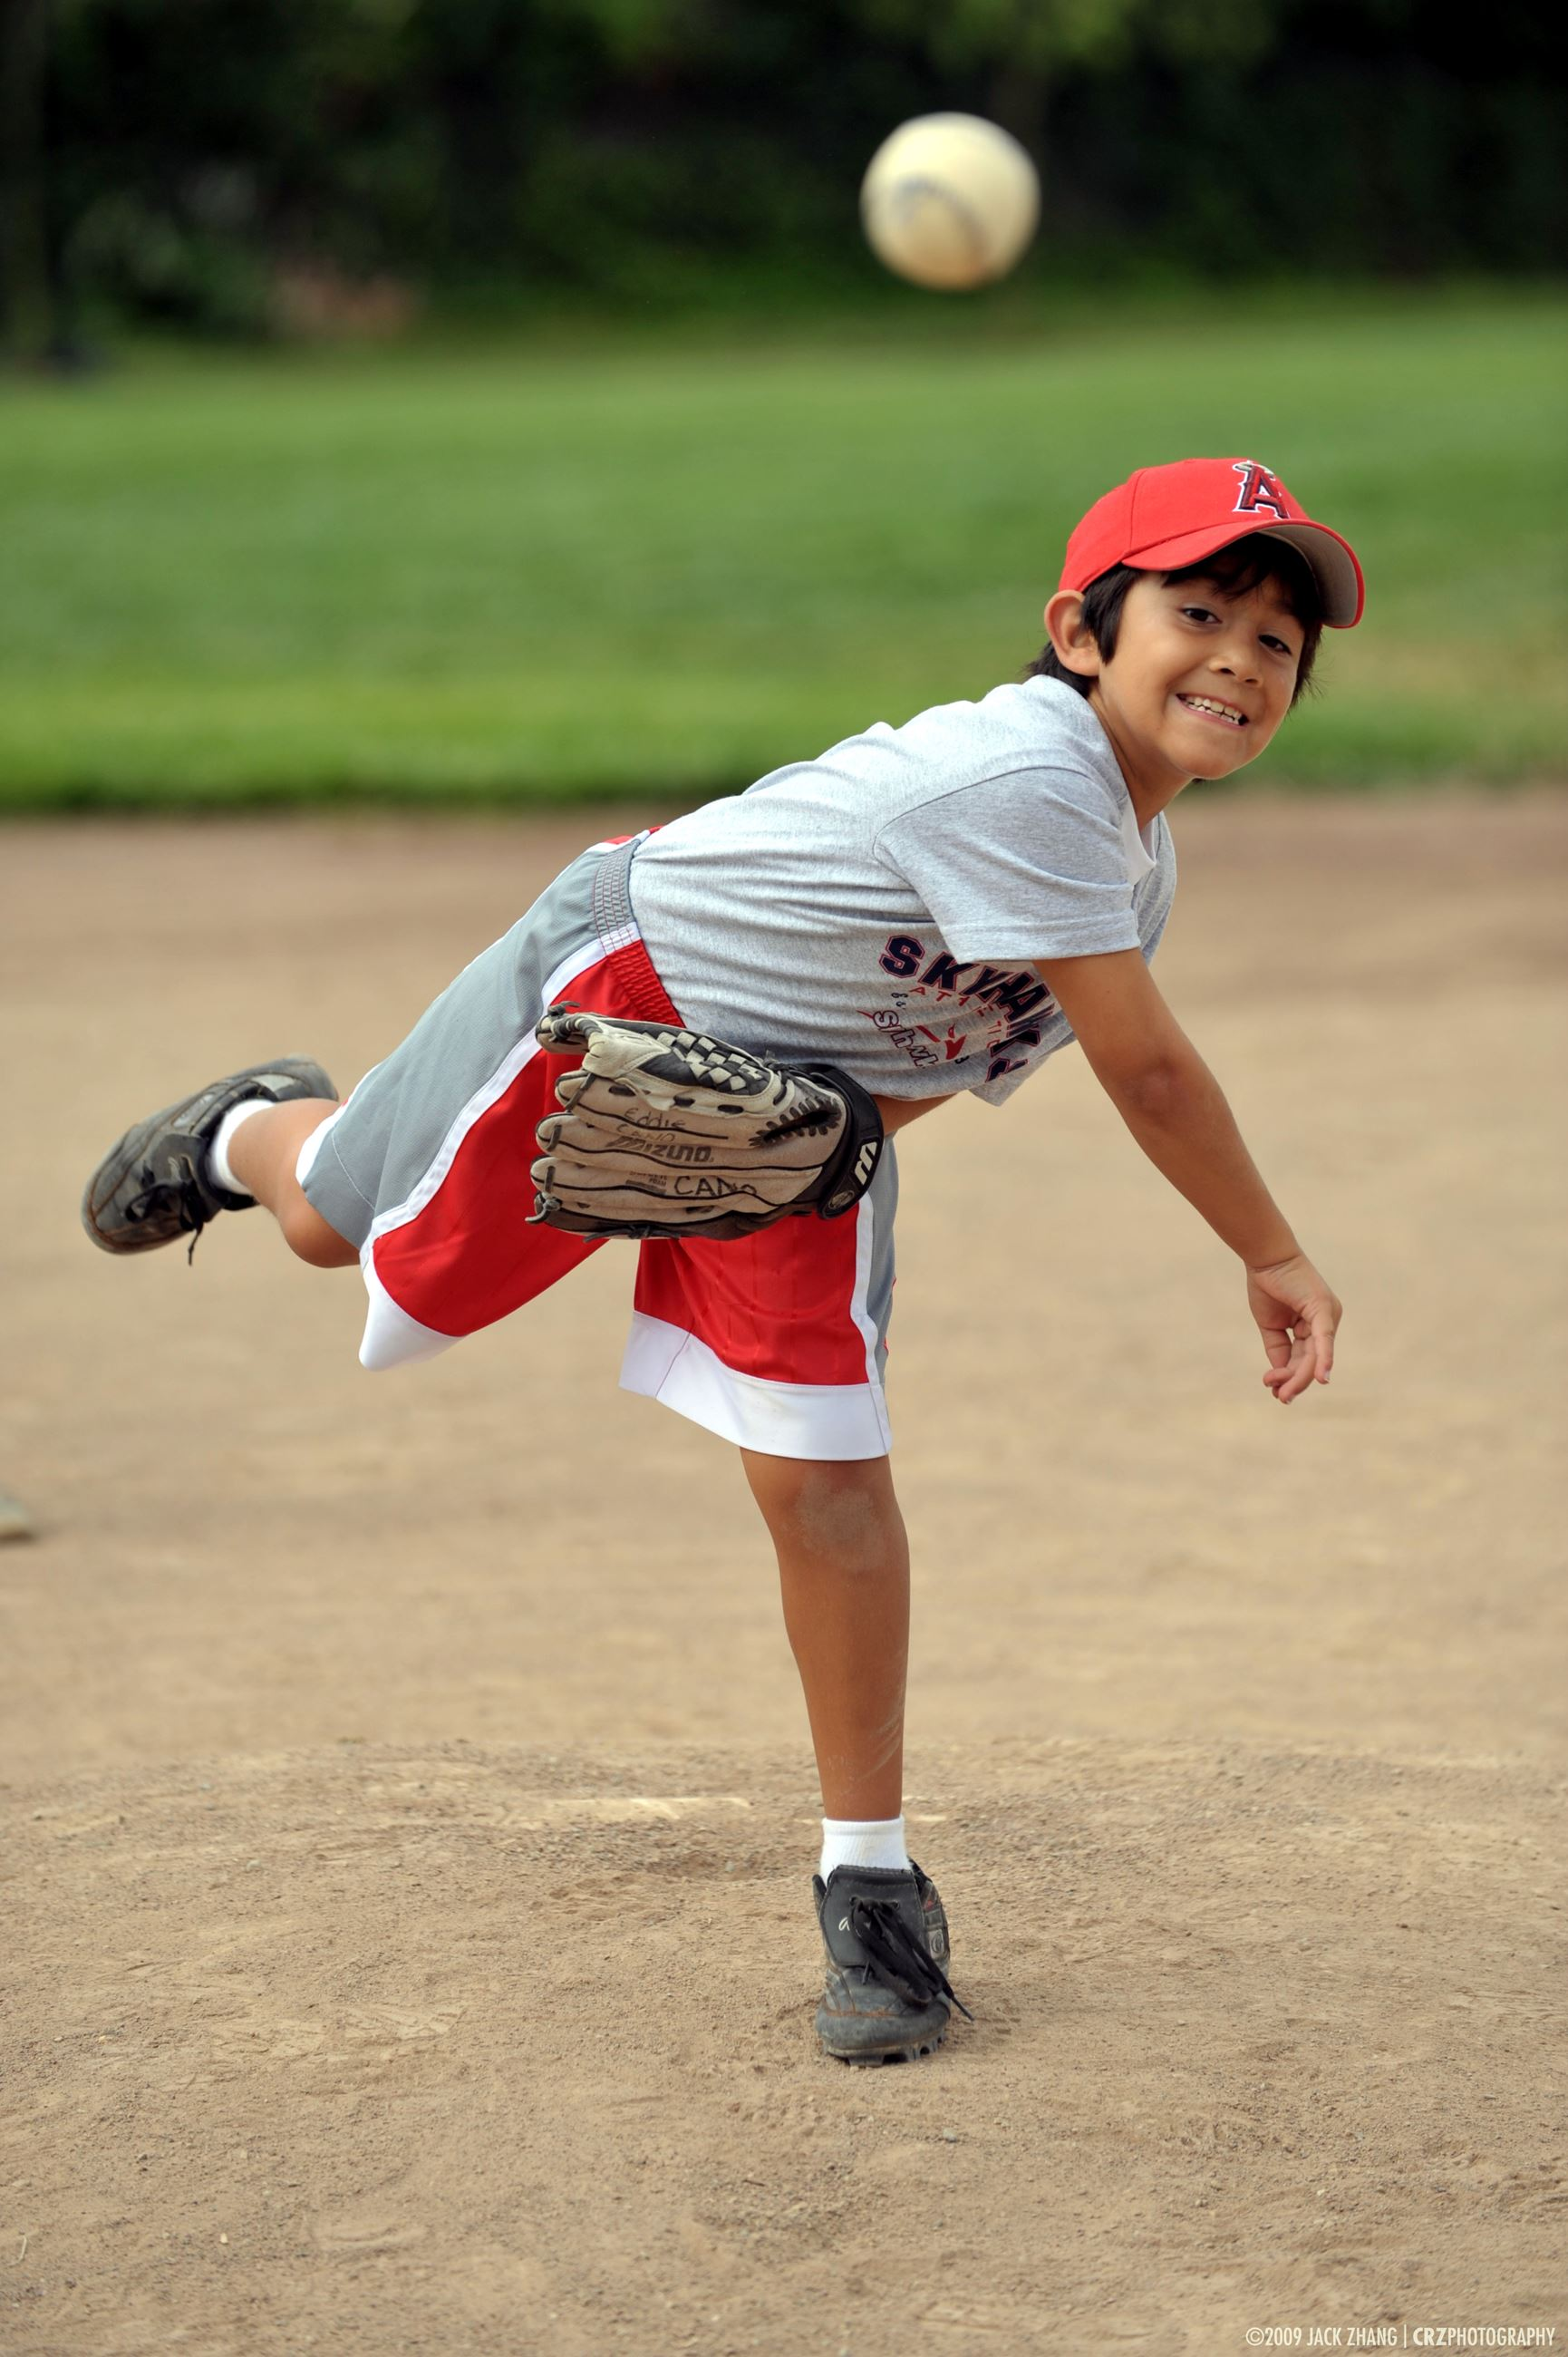 Boy pitcher throwing ball towards the camera